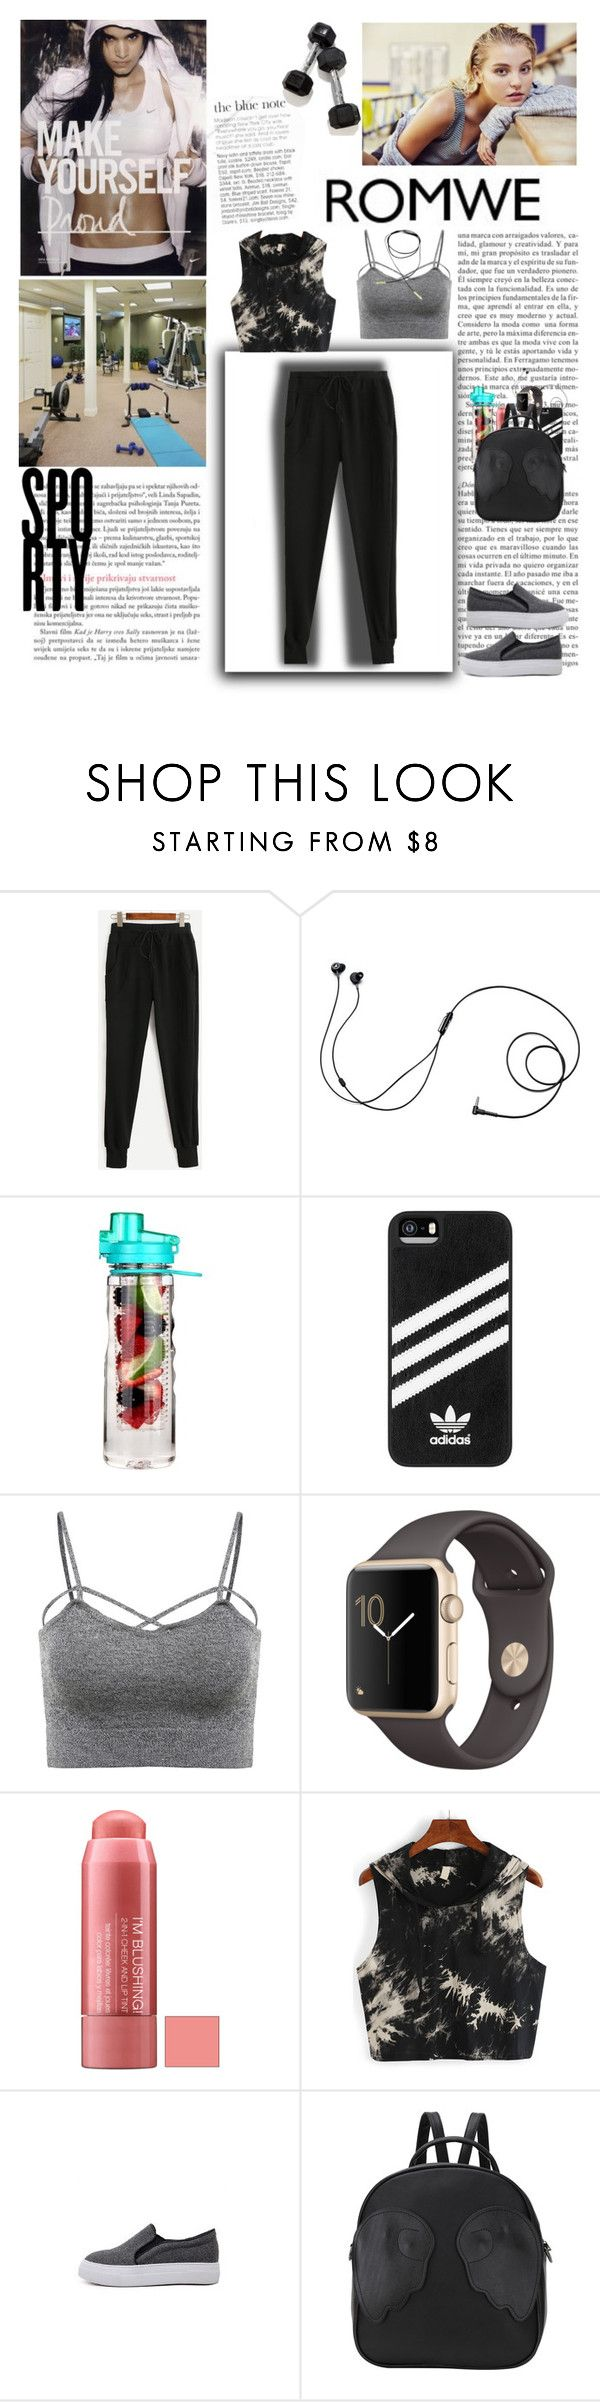 """""""Romwe! - Black Drawstring Waist Pants!!!"""" by miss-maca ❤ liked on Polyvore featuring Marshall, NIKE, Urban Outfitters and adidas"""